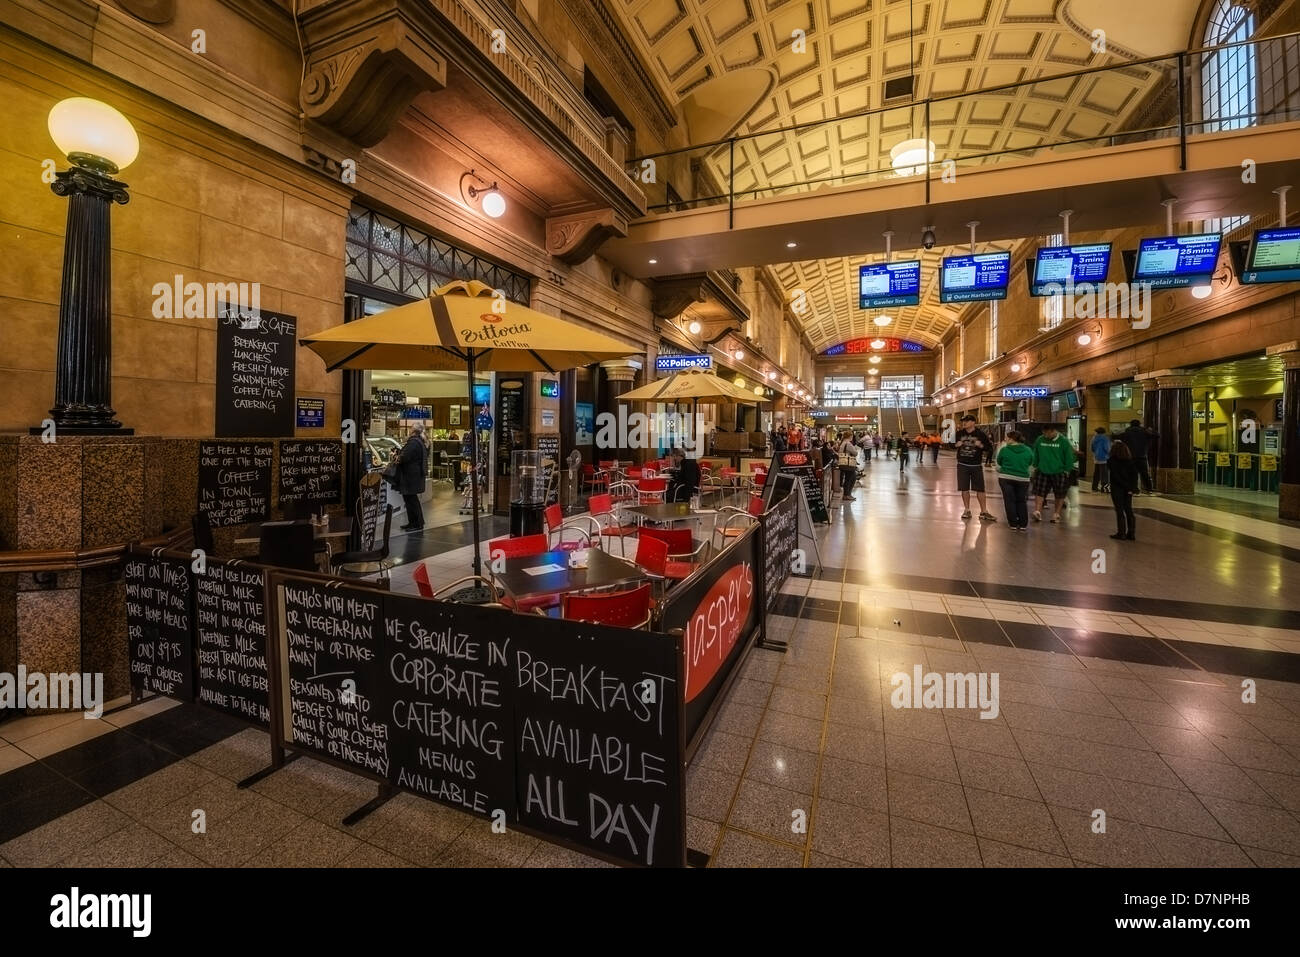 A café inside Adelaide's architecturally ornate central Railway Station. - Stock Image